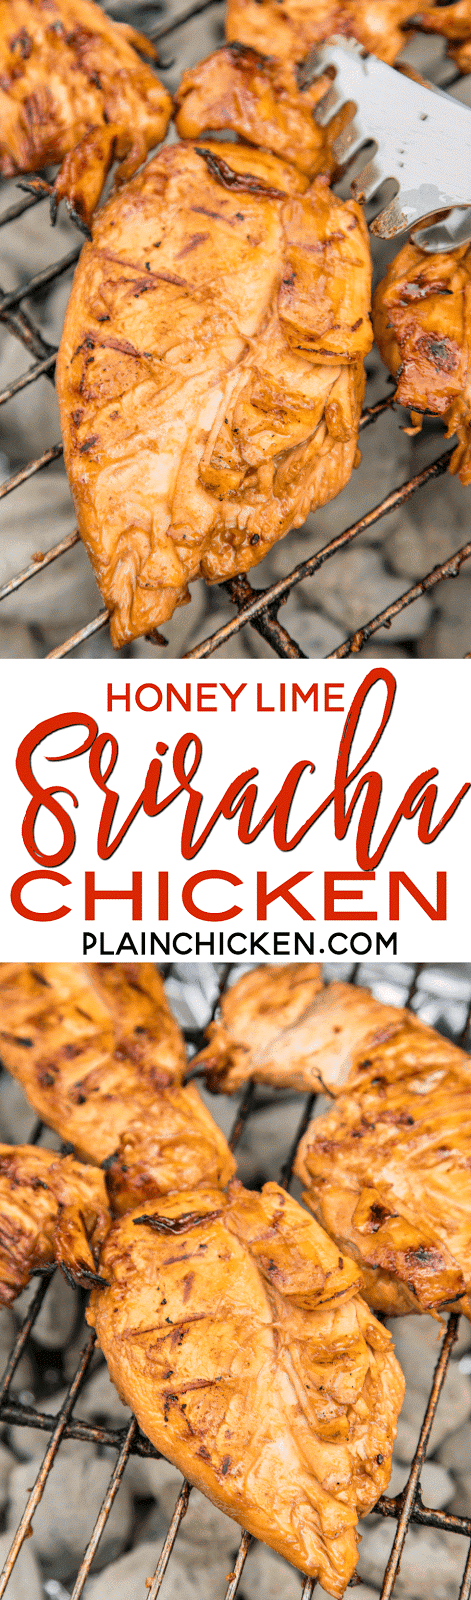 Honey Lime Sriracha Chicken Recipe - chicken marinated in honey, soy sauce, Worcestershire, garlic, lime and Sriracha - Let the chicken marinate for at least 4 hours and then grill to perfection. Sweet with a little heat! One of our favorite grilled chicken recipes!